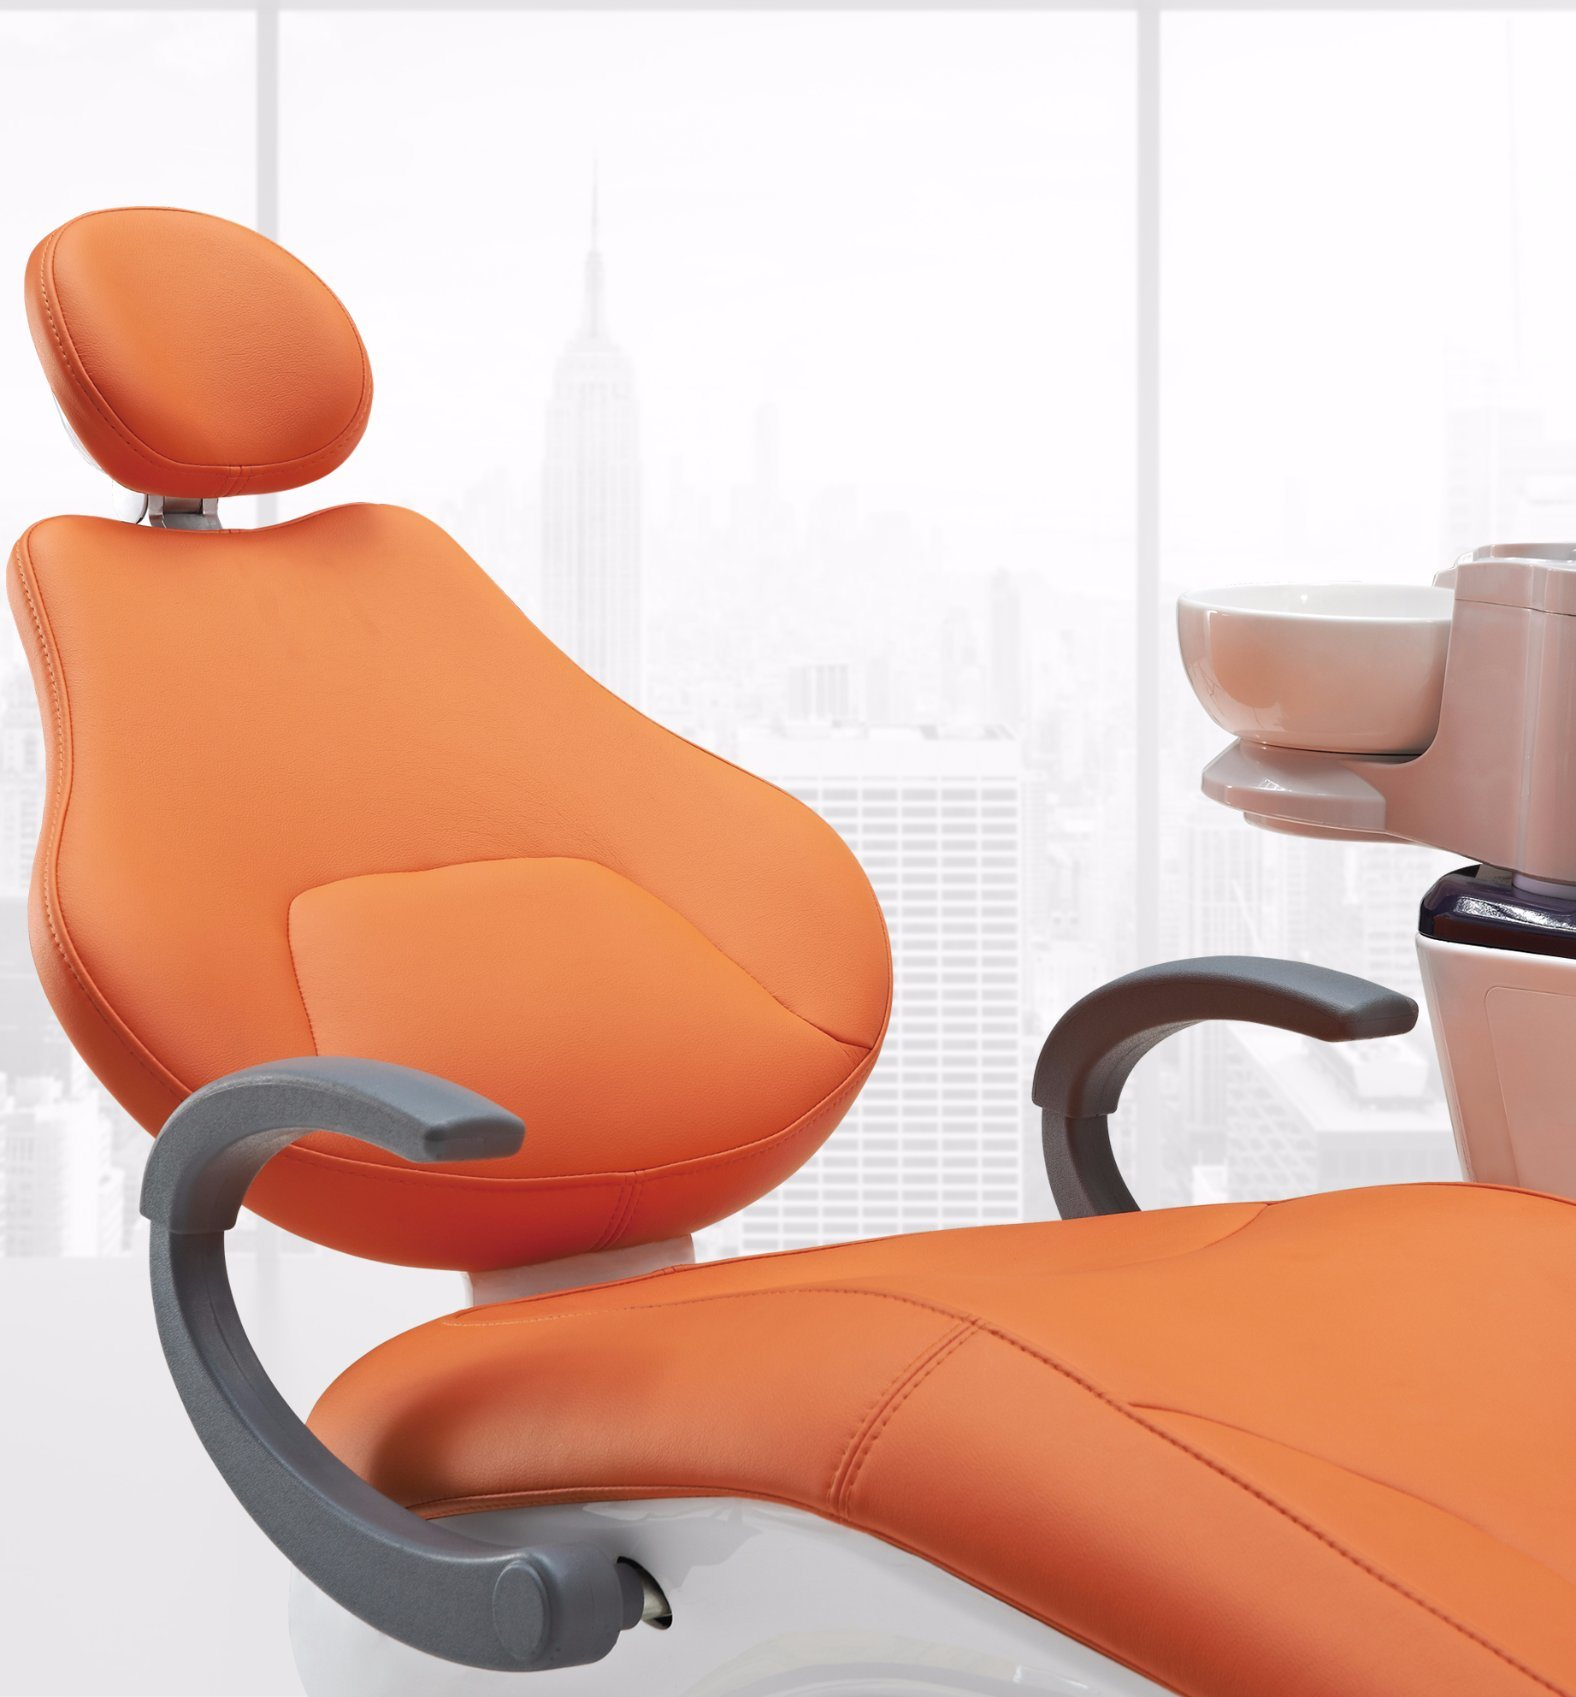 Multifuction Dental Chair in Foshan City